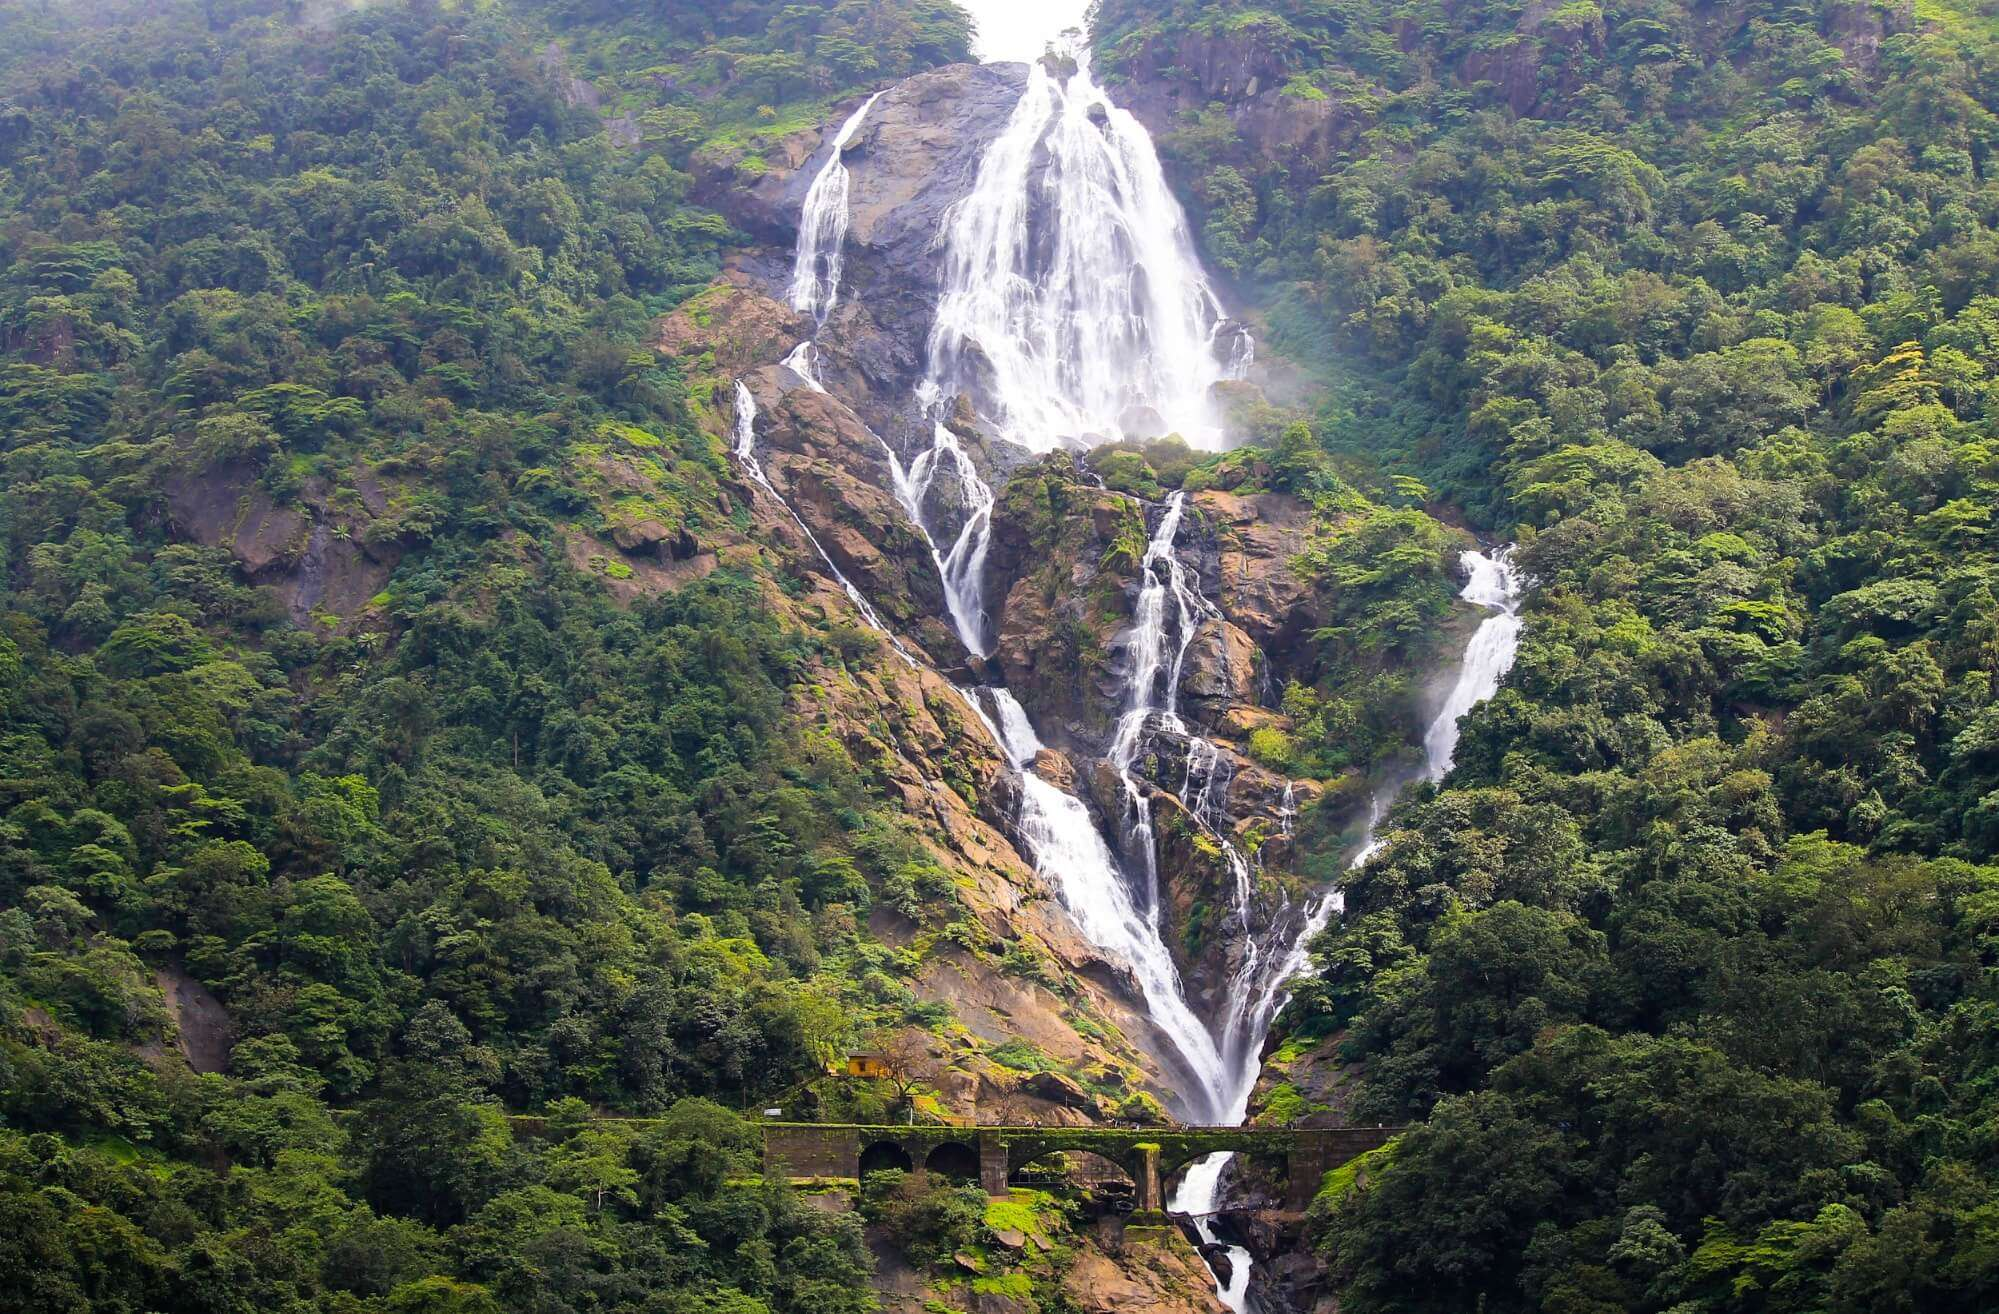 Duddhsagar waterfalls in Goa